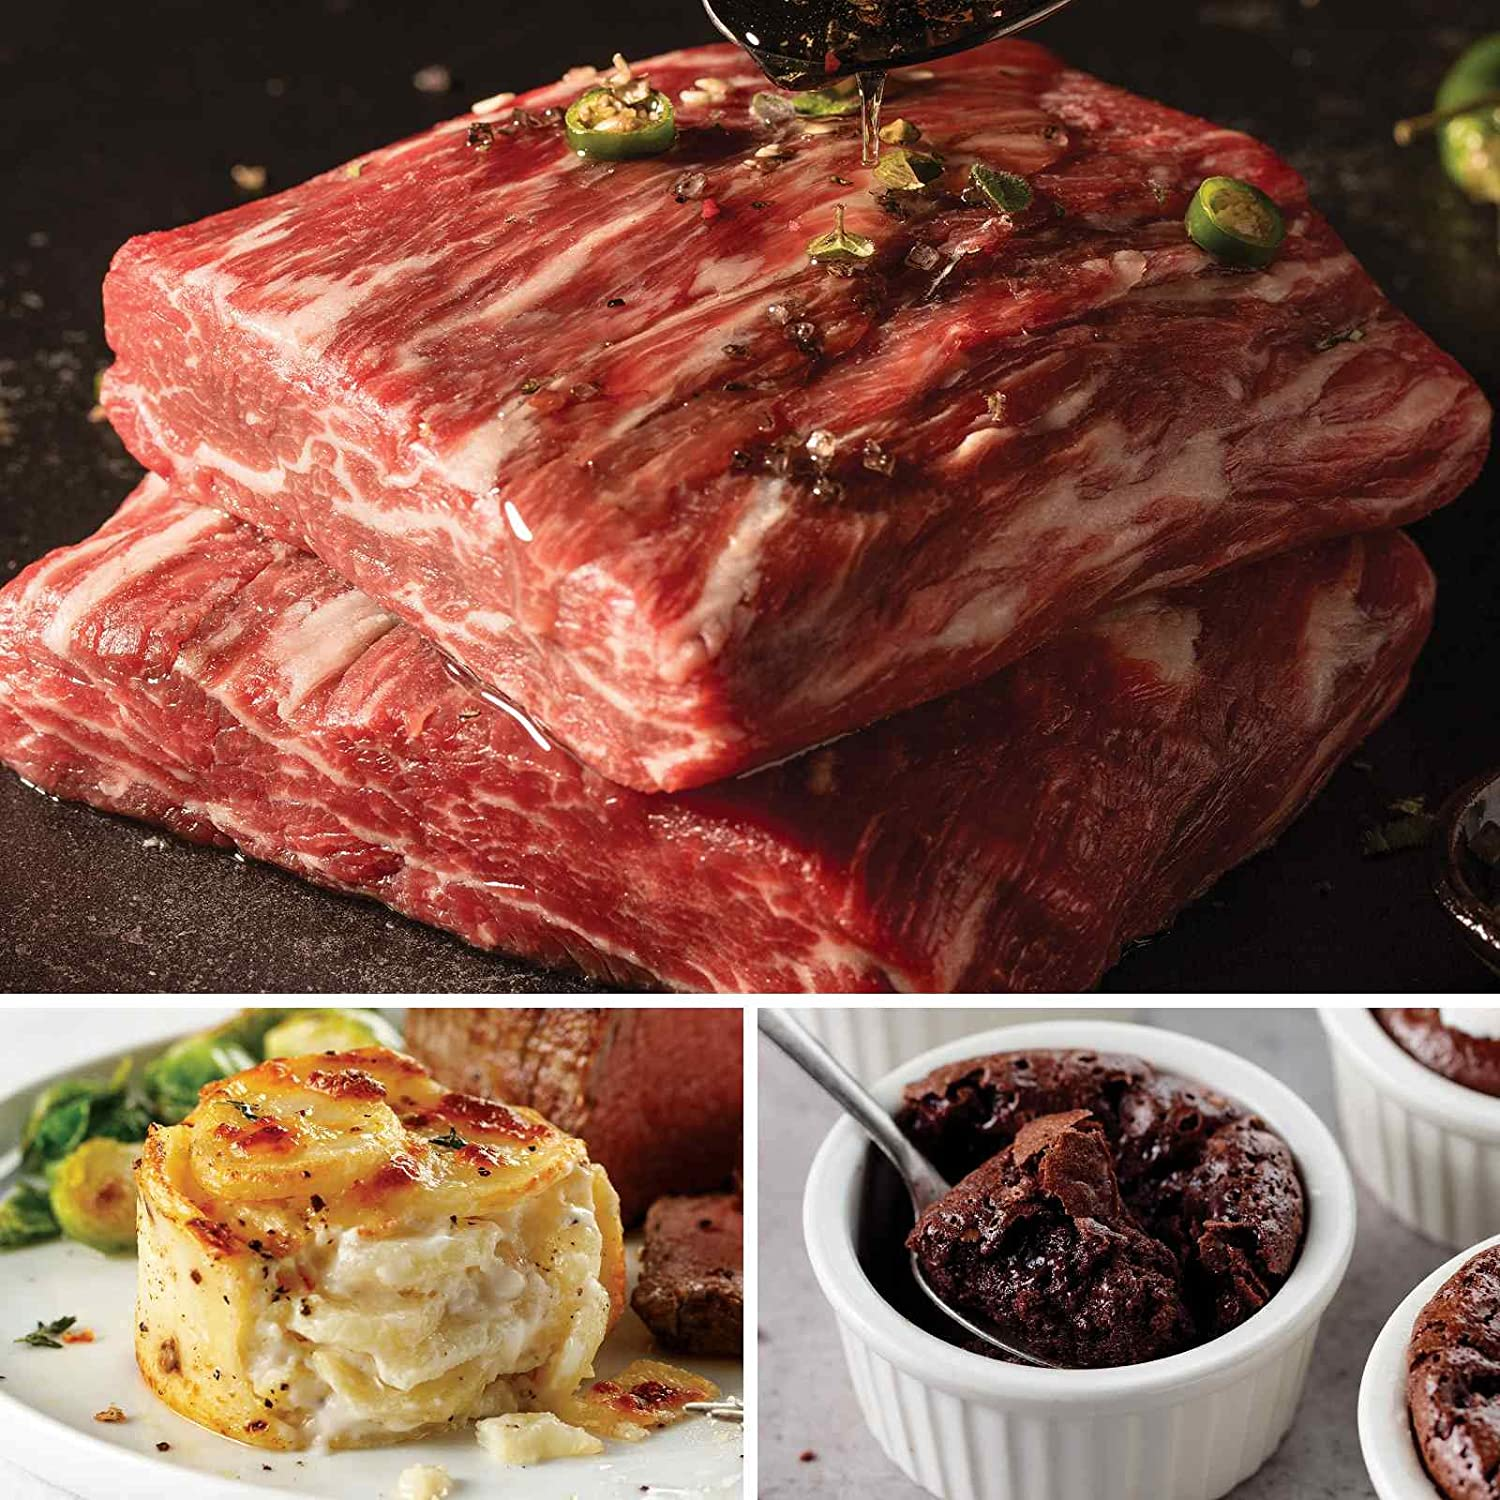 Royal Ribeye Crown Dinner from Omaha Steaks (Private Reserve Ribeye Crown Steaks, Individual Scalloped Potatoes, and Individual Chocolate Souffles)